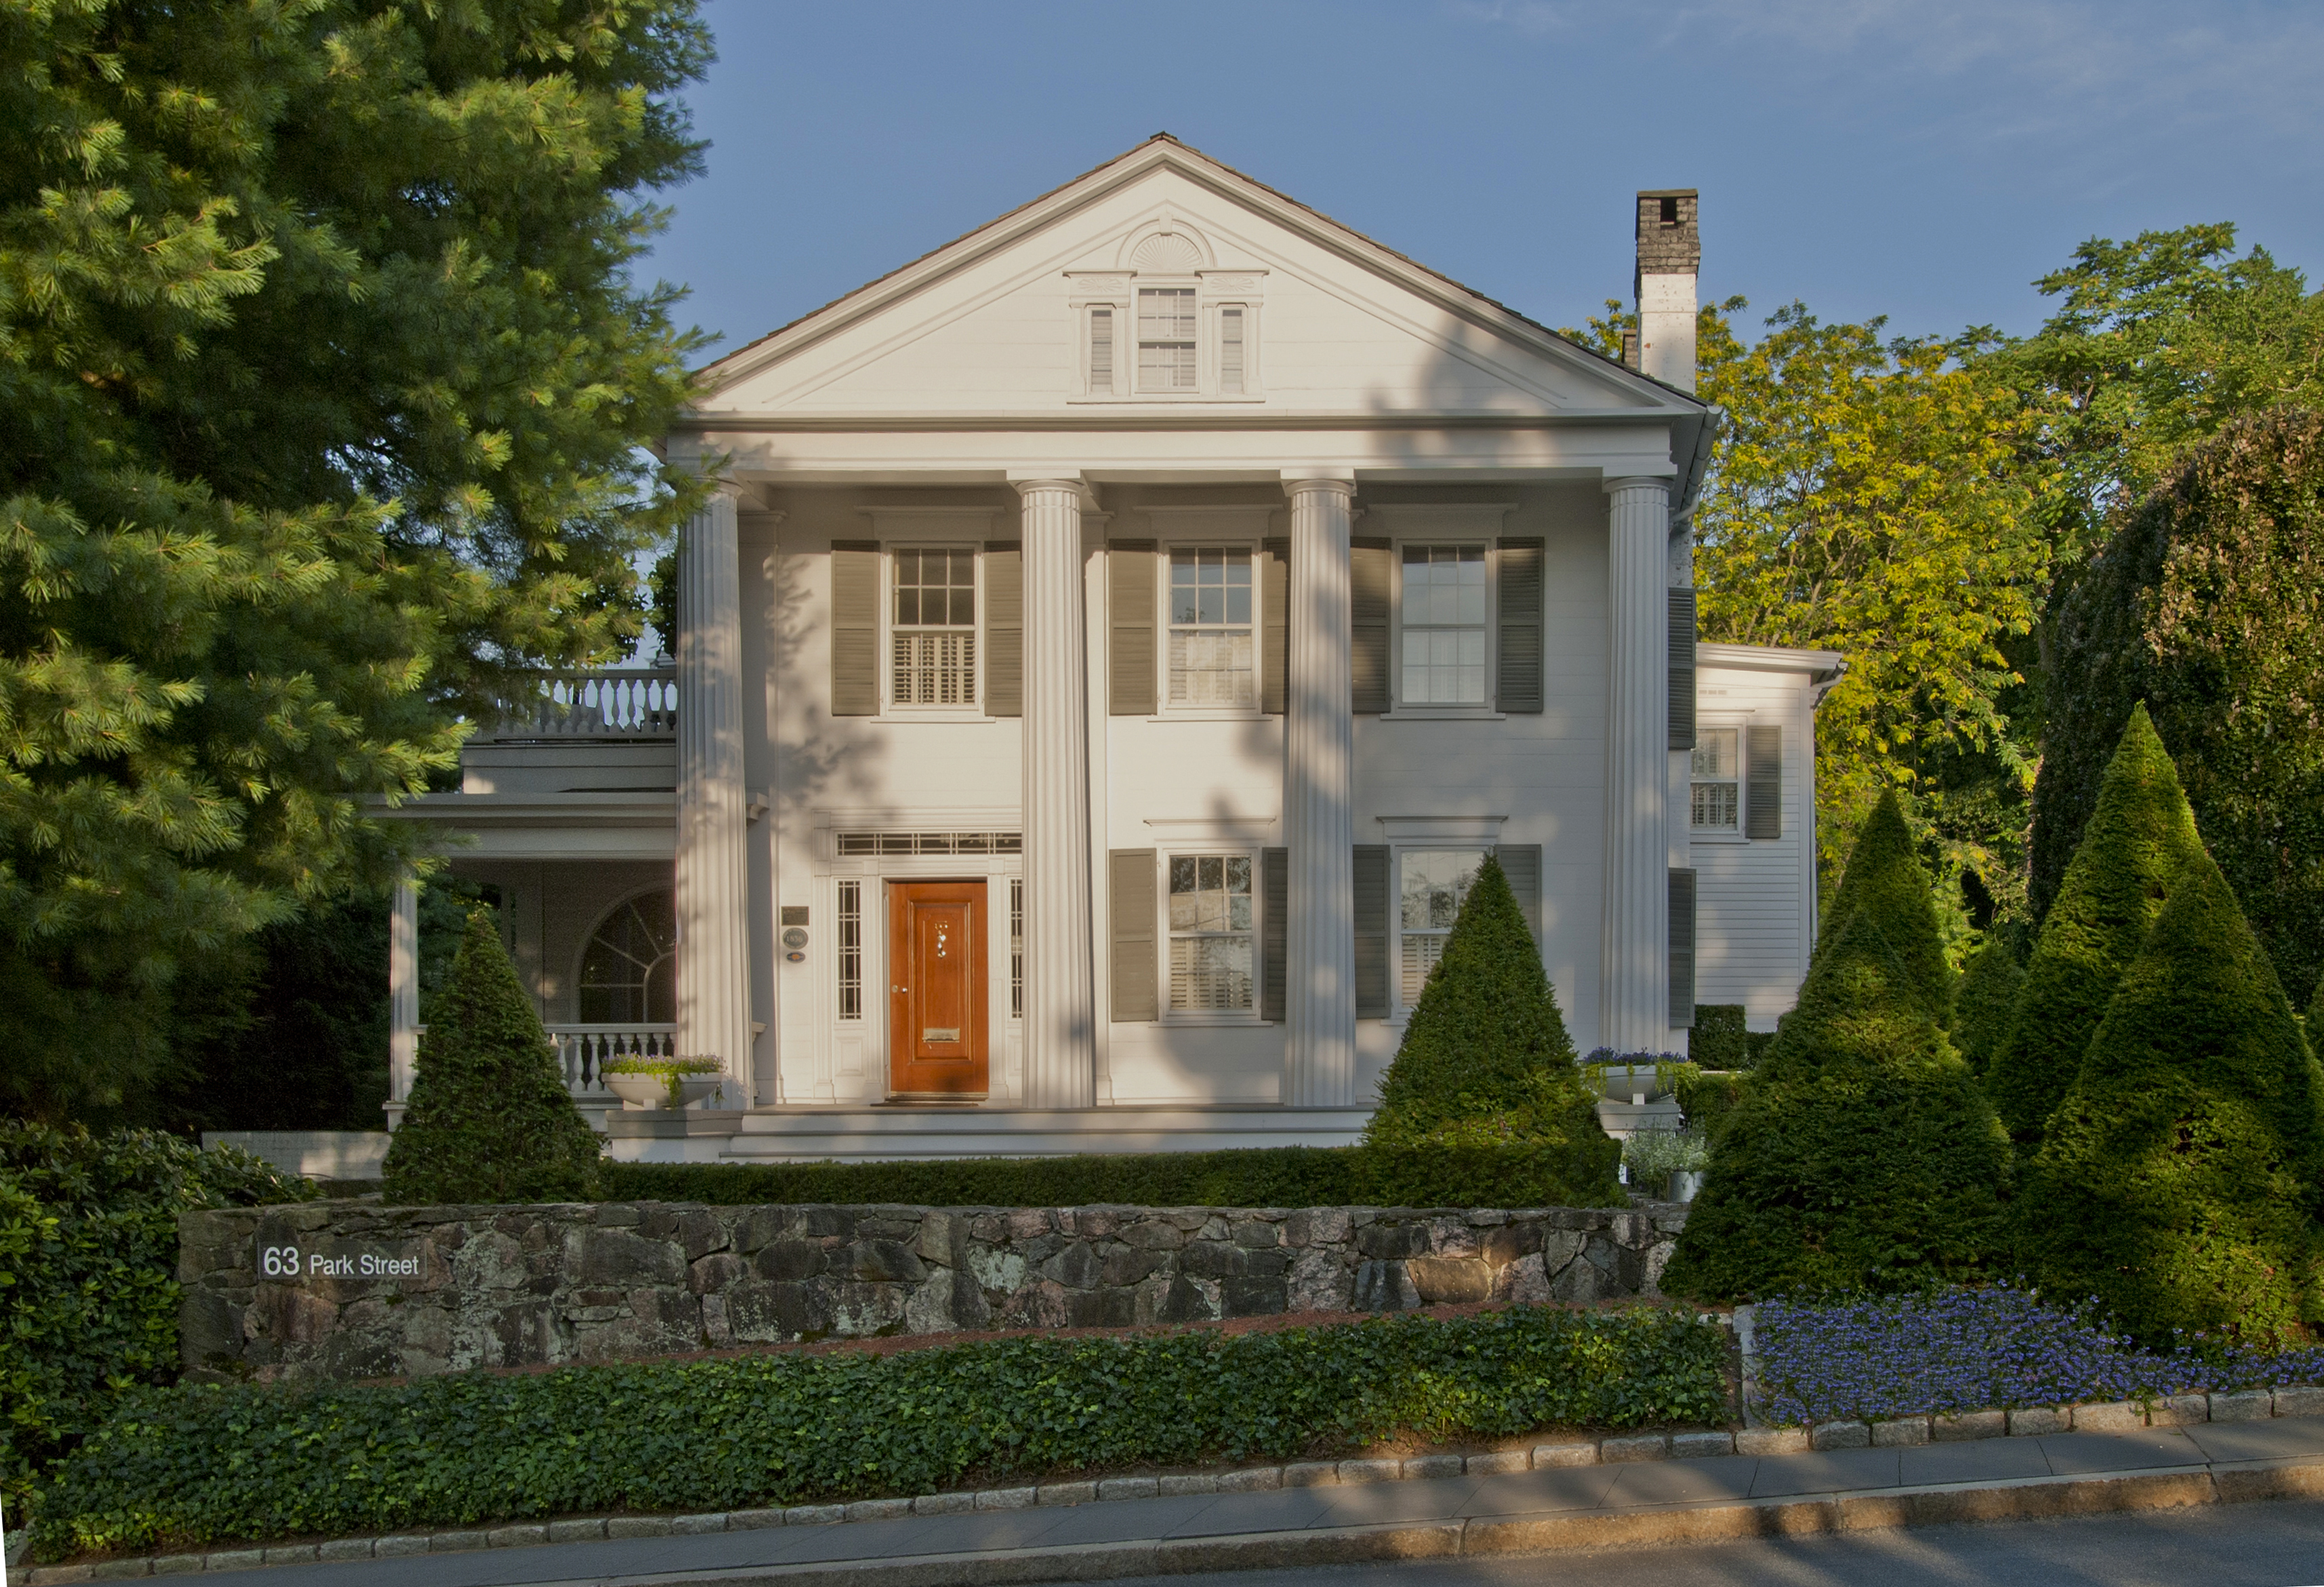 Property For Sale at Landmark Home of Maxwell E. Perkins